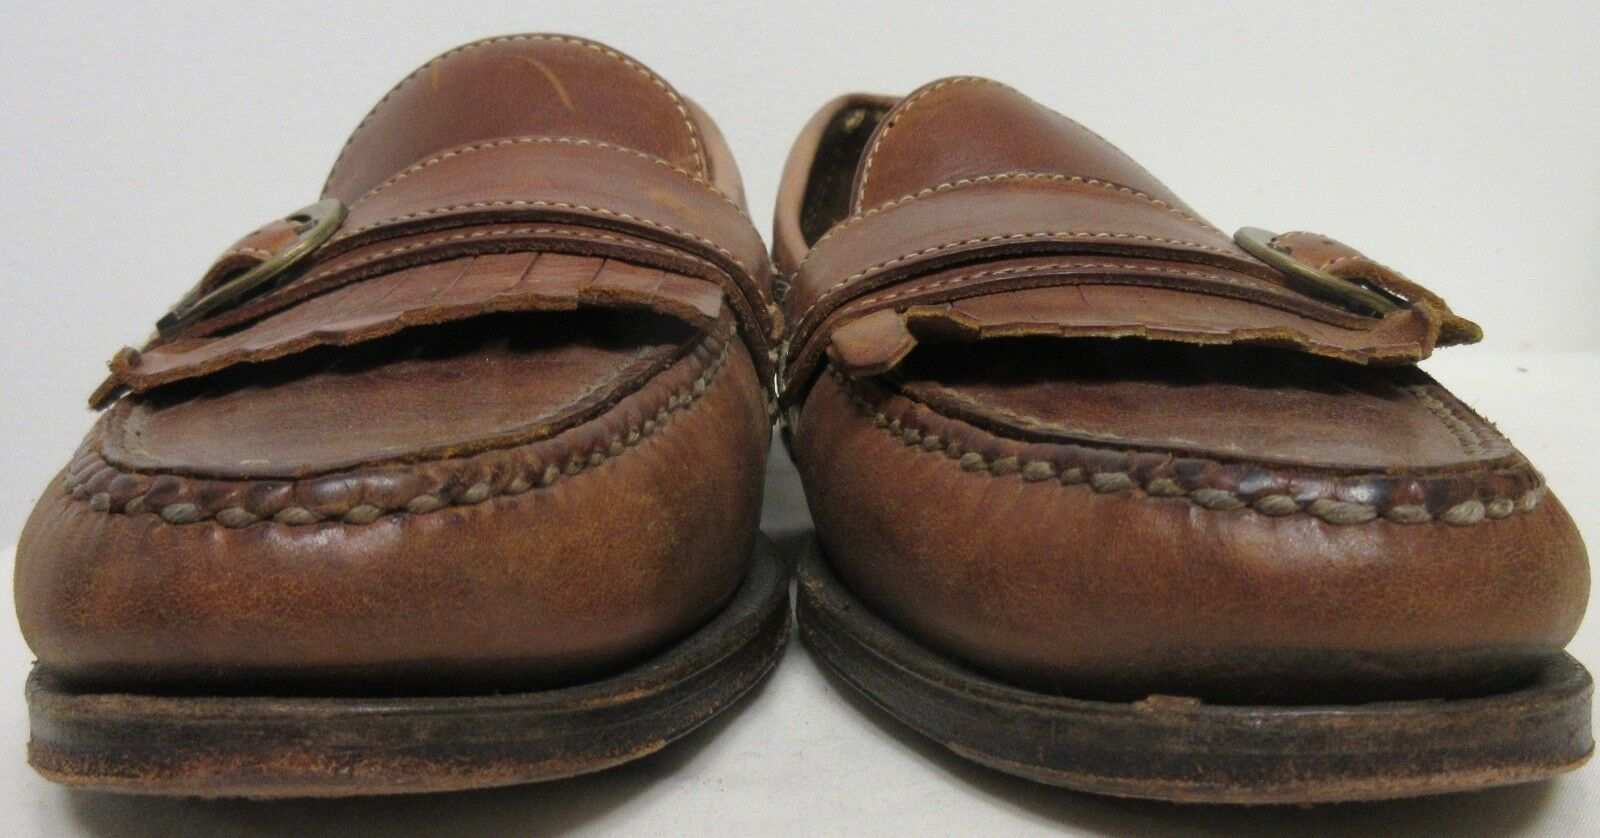 H.S. H.S. H.S. TRASK BROWN LEATHER CASUAL LOAFERS SHOES BRASS TONE BUCKLE Uomo SIZE 10.5 dc5ac2